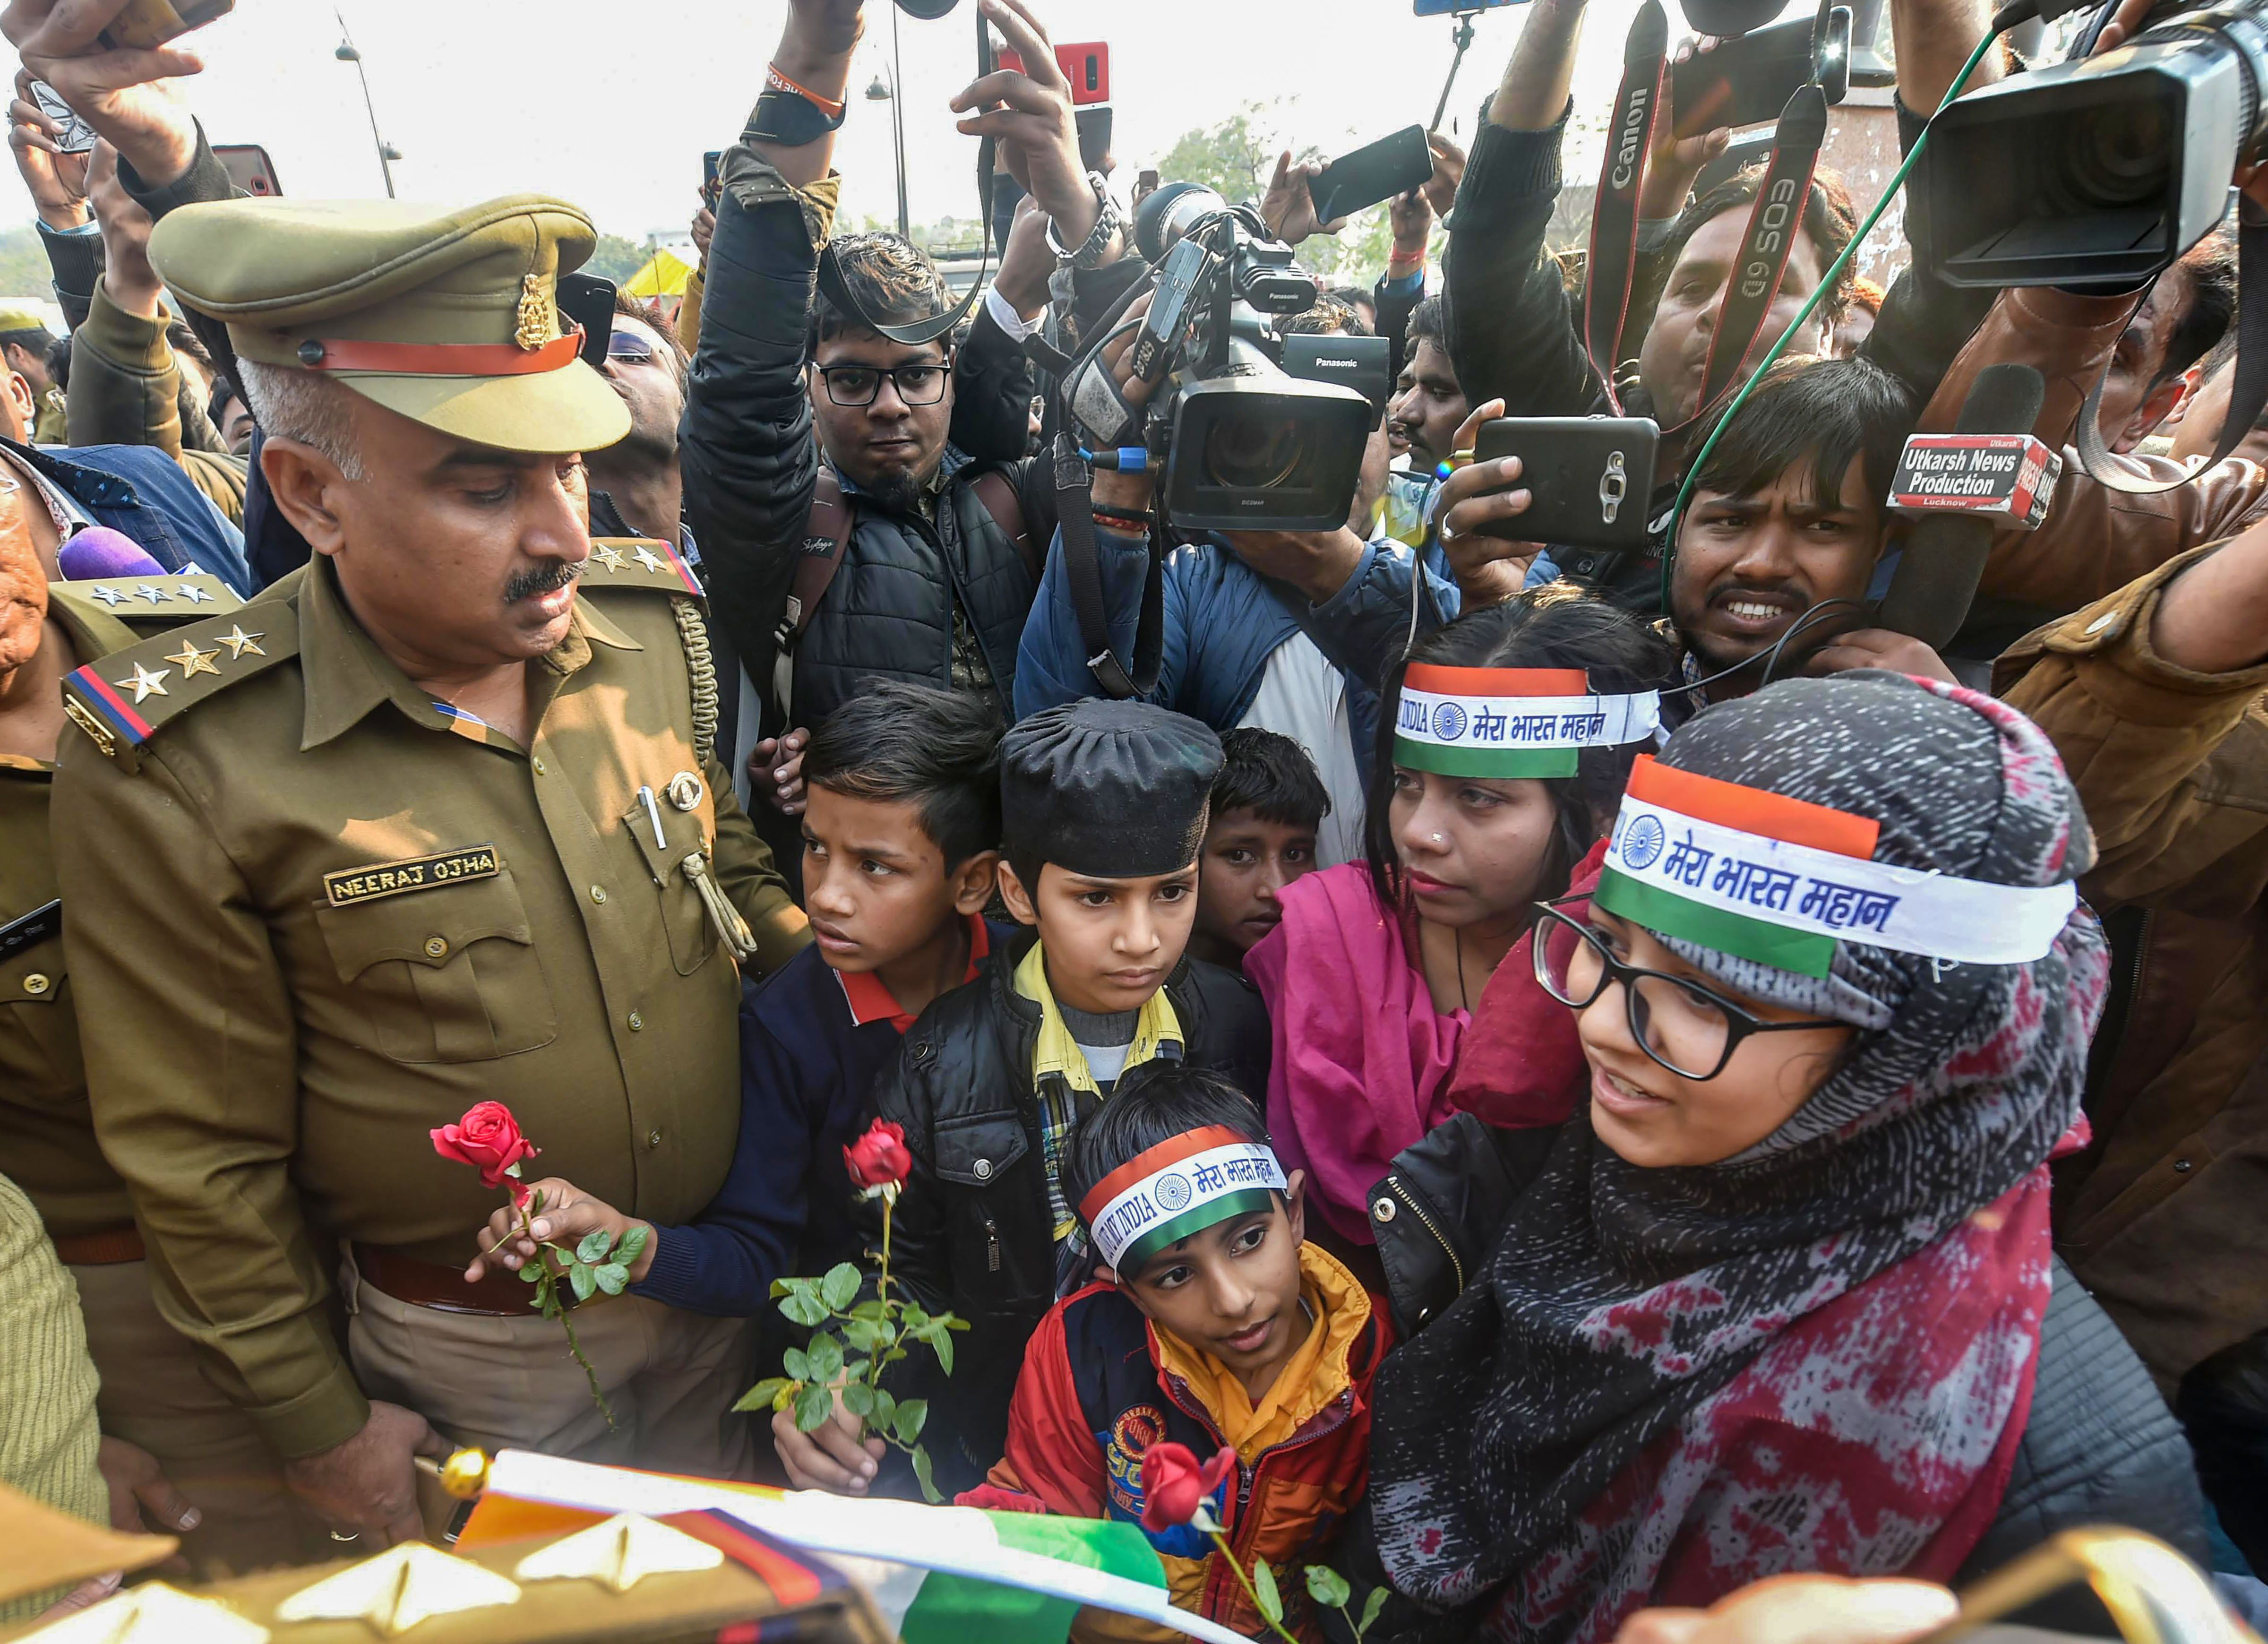 Women protesters along with their children offer roses to policemen during a peaceful dharna against CAA and NRC, at the historic Clock Tower in Lucknow, Saturday, January 25, 2020.